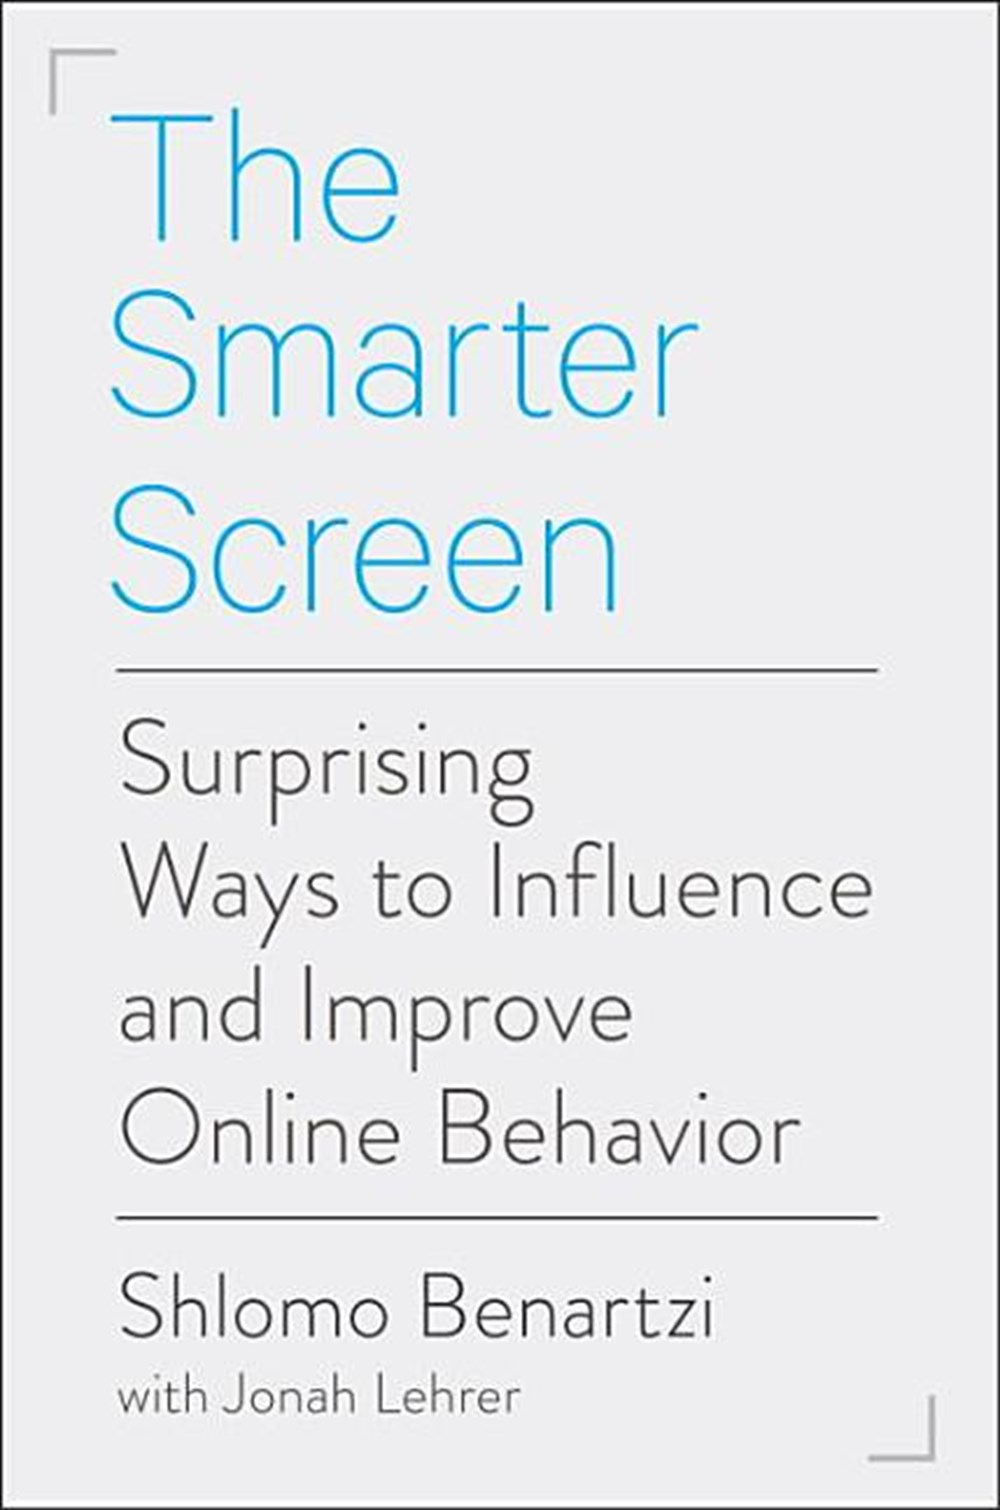 Smarter Screen Surprising Ways to Influence and Improve Online Behavior